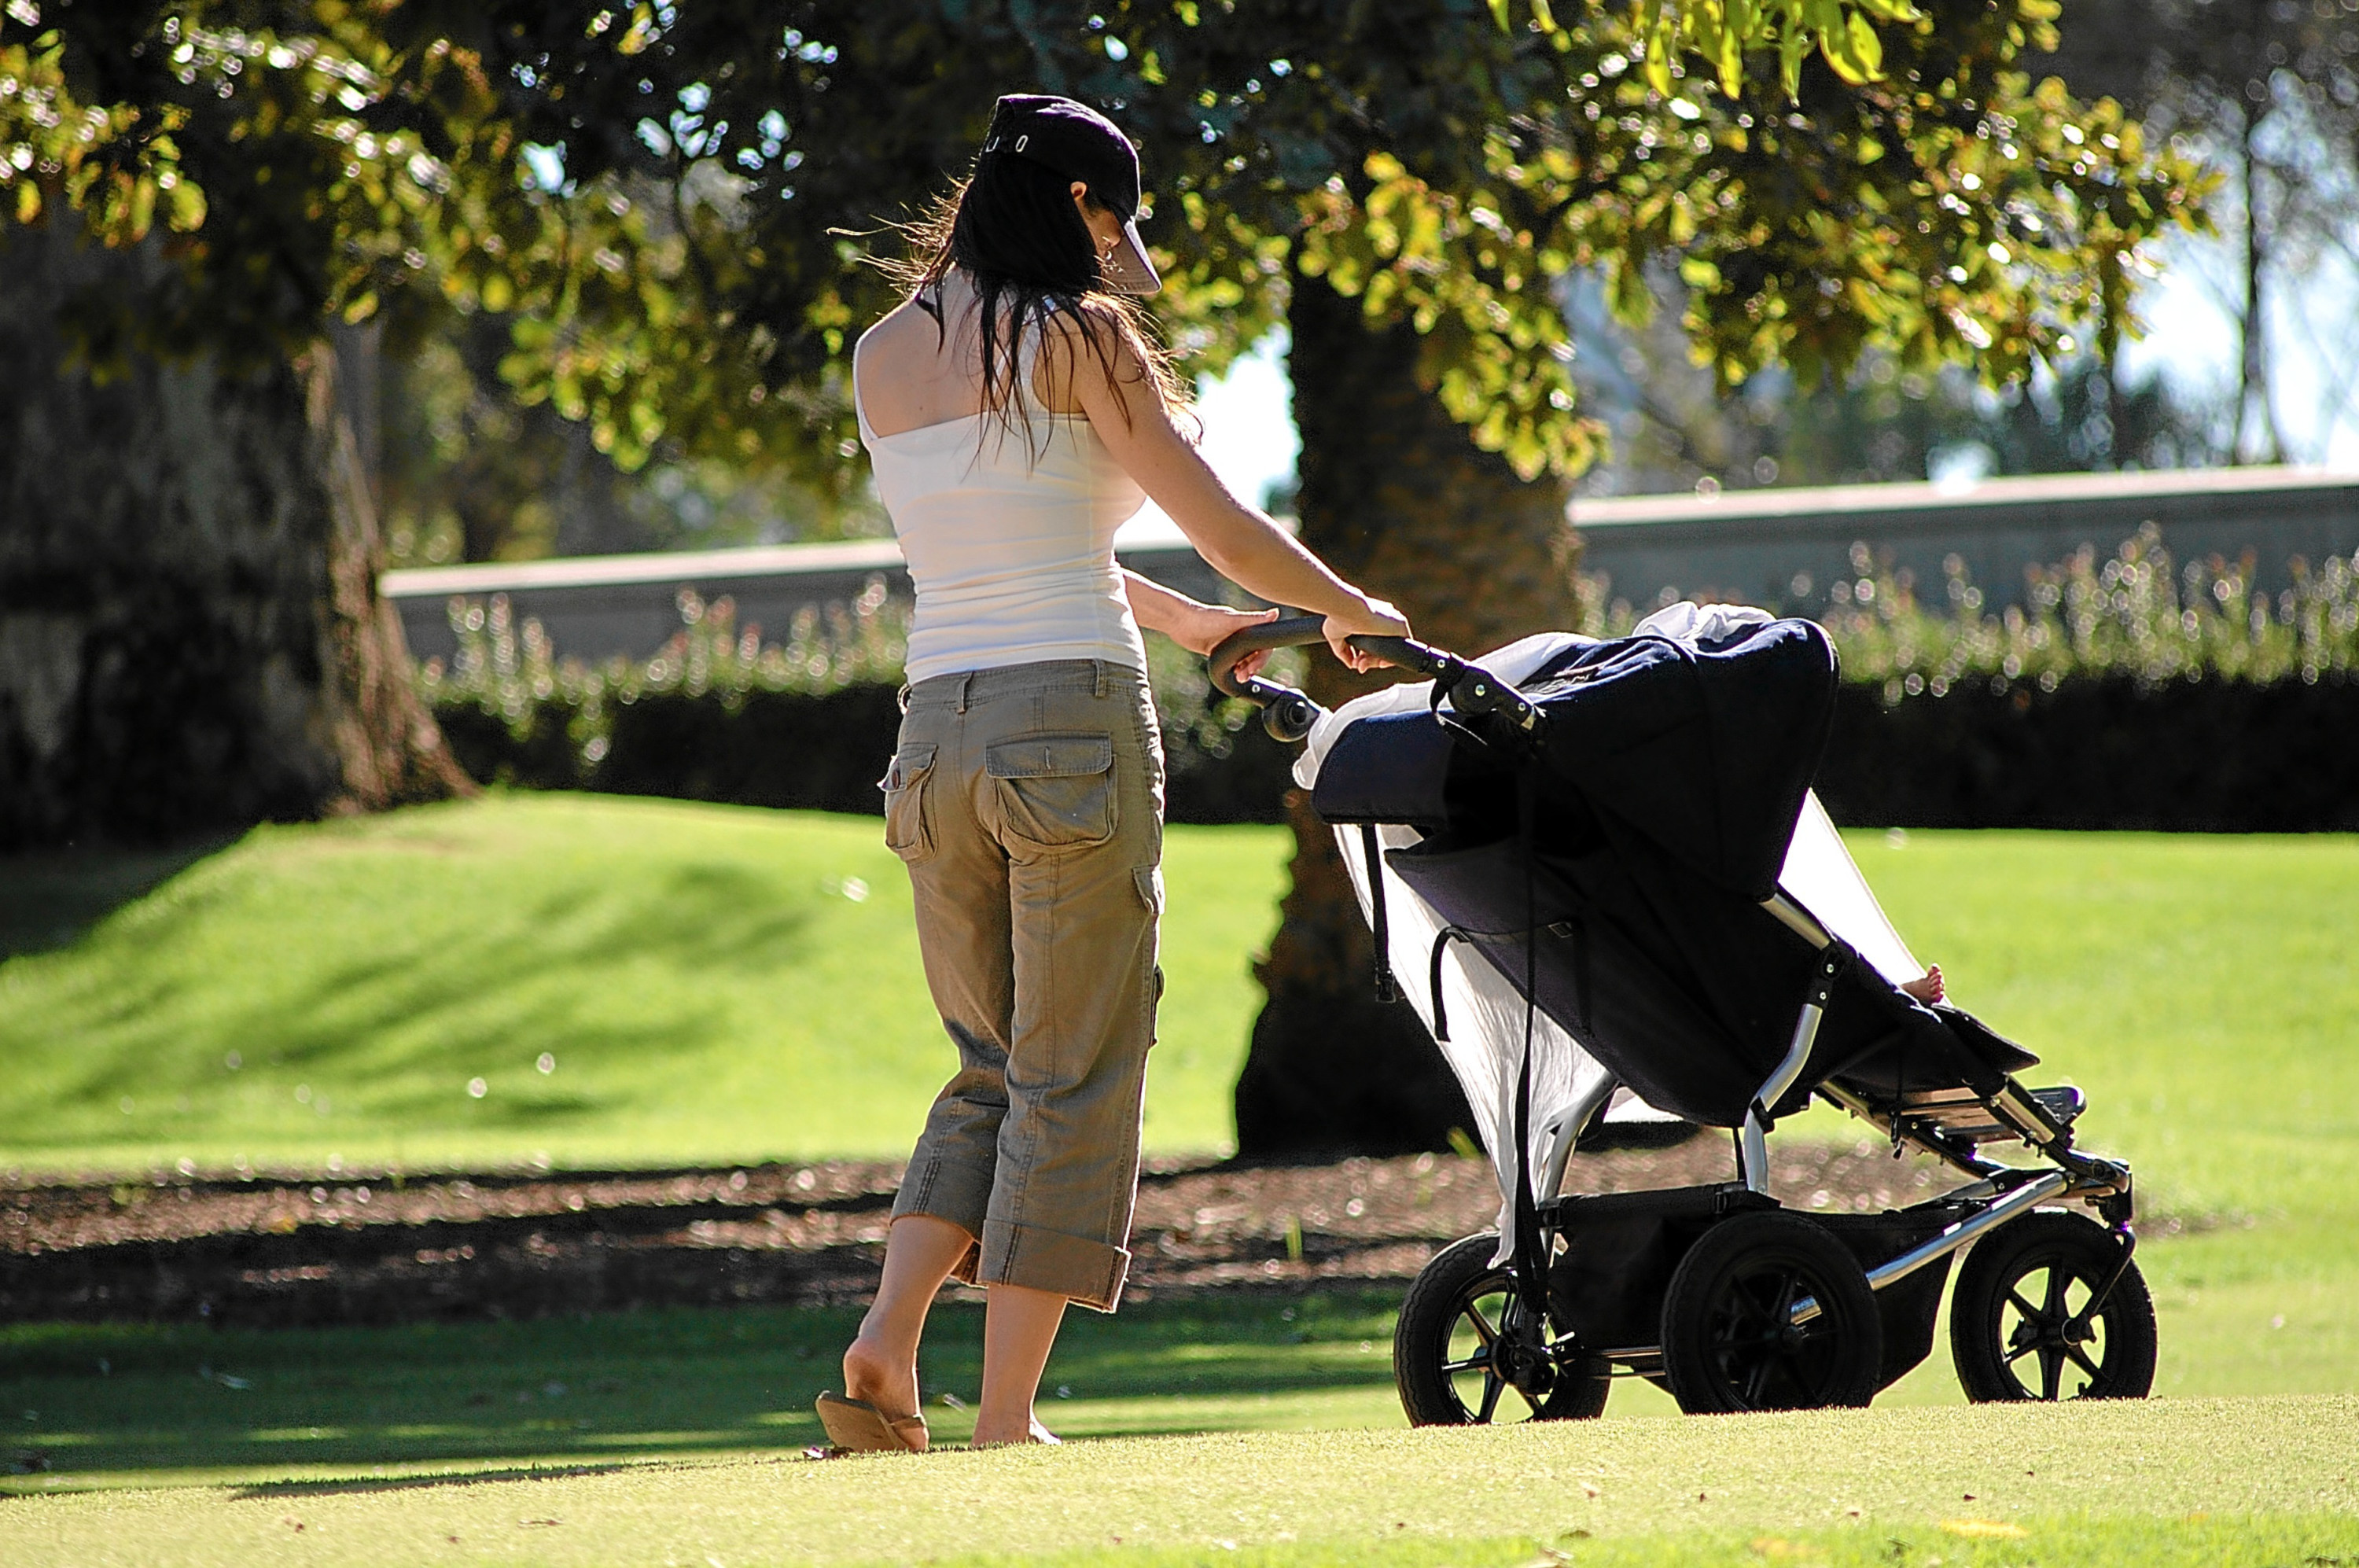 The new bargain buggies section hopes to help budget conscious families.